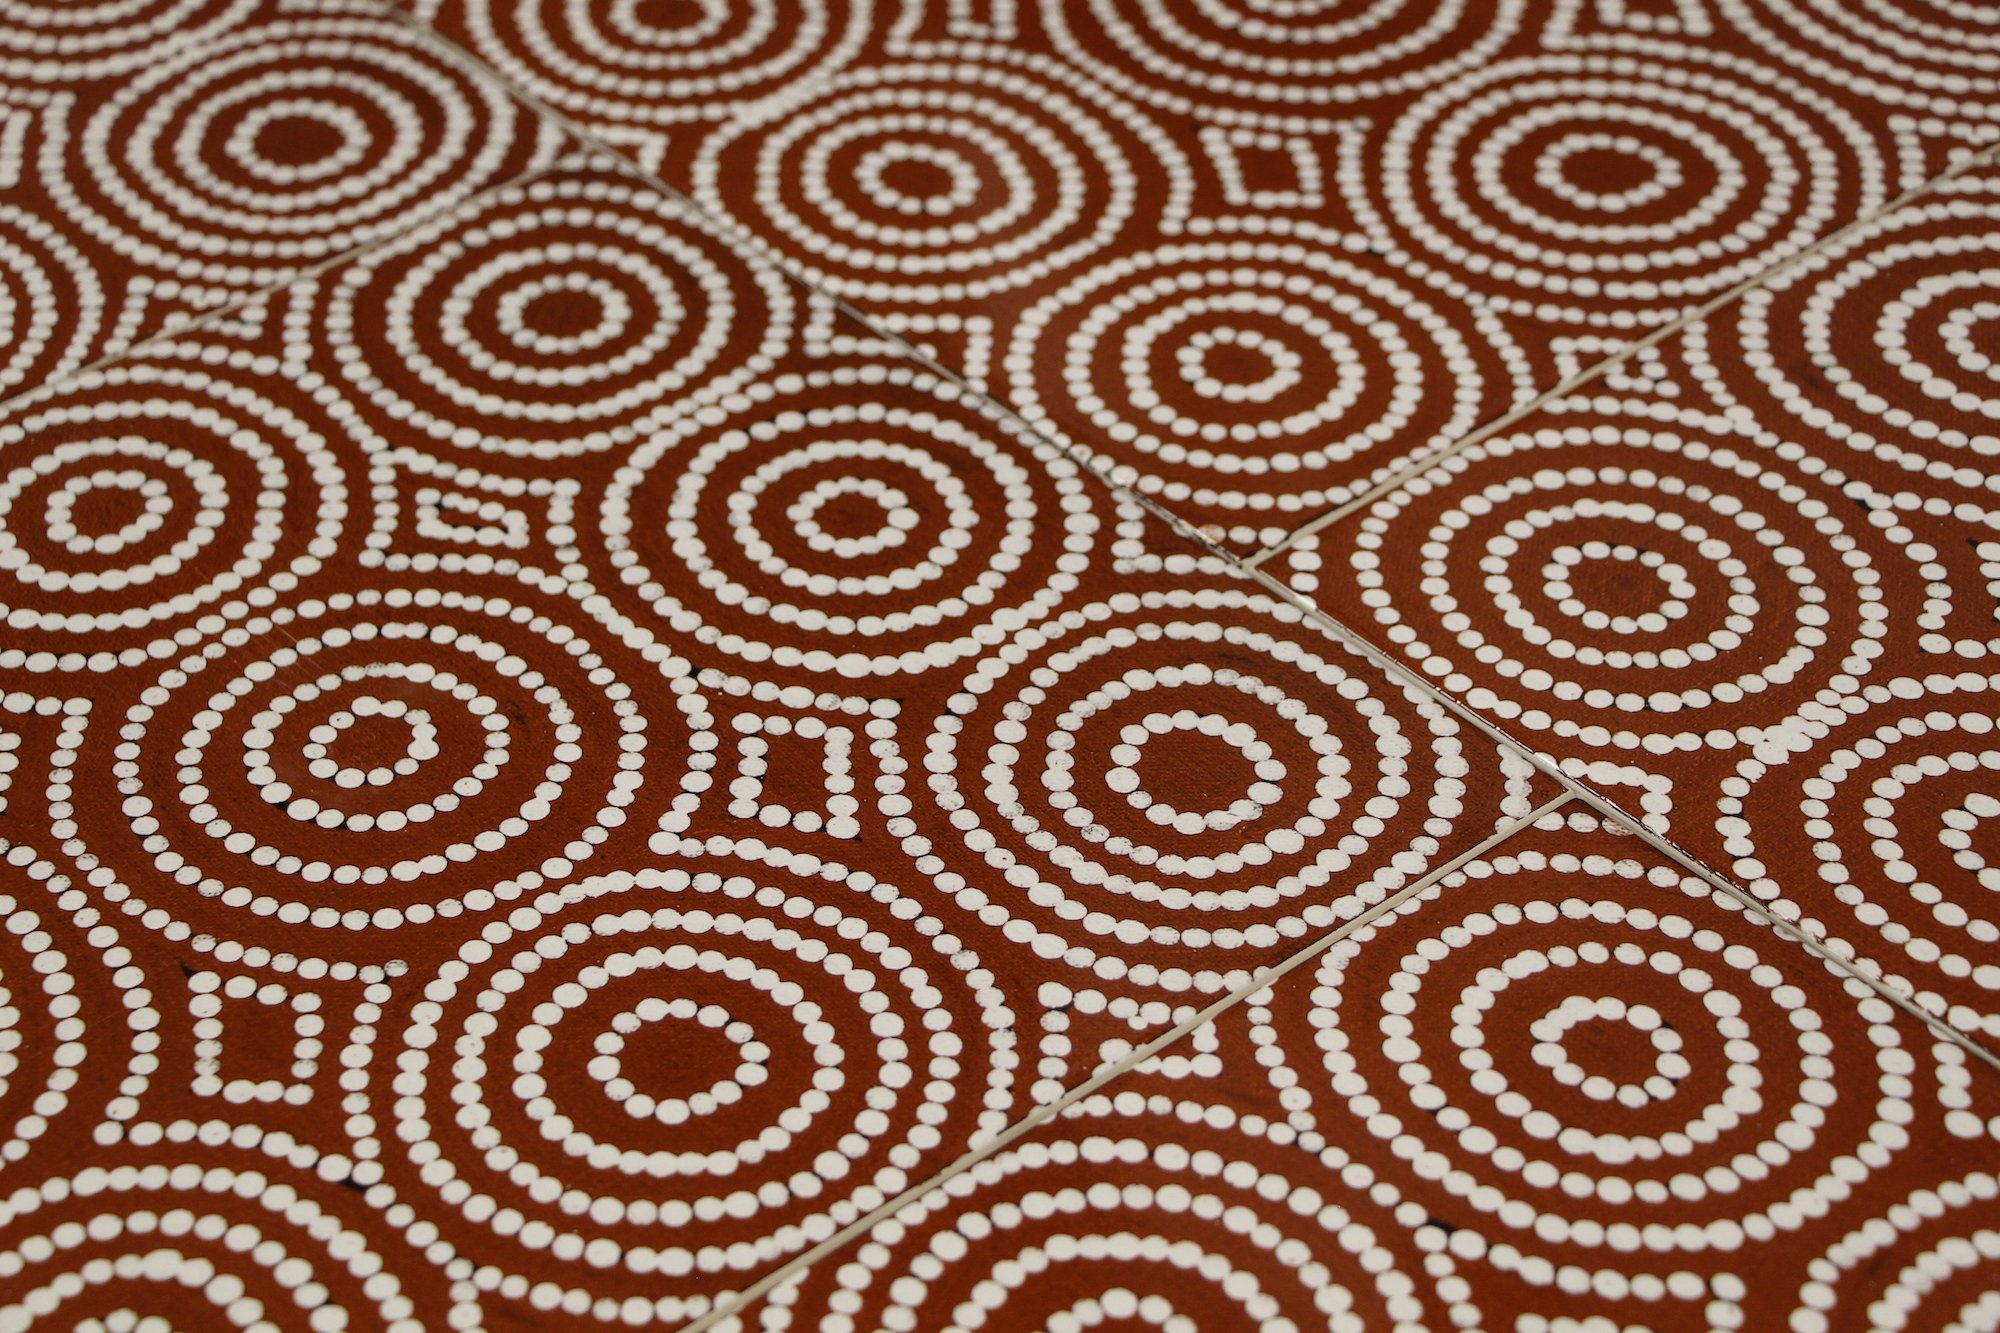 Detail of our  award winning Bush Onion 1 ceramic wall tile , from an original Australian Aboriginal painting.